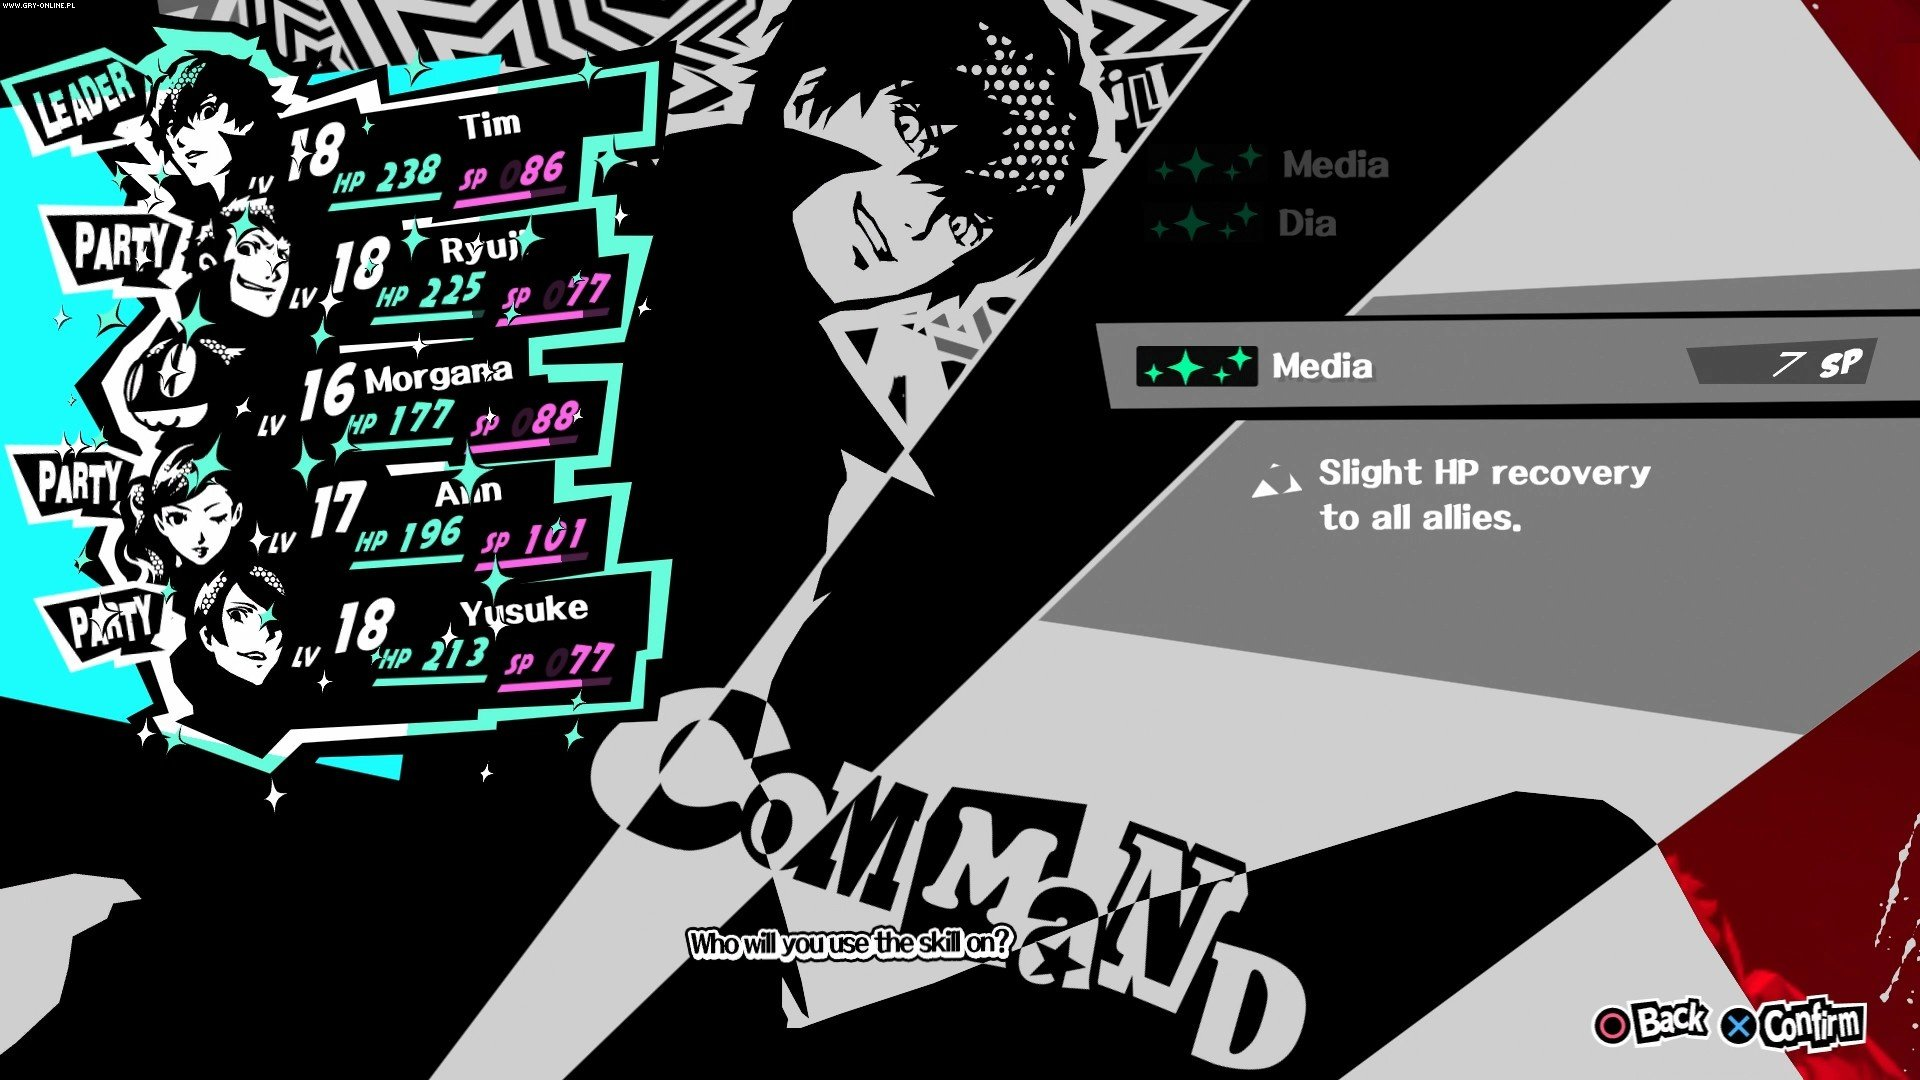 Persona 5 PS4 Gry Screen 5/71, Atlus, Deep Silver / Koch Media